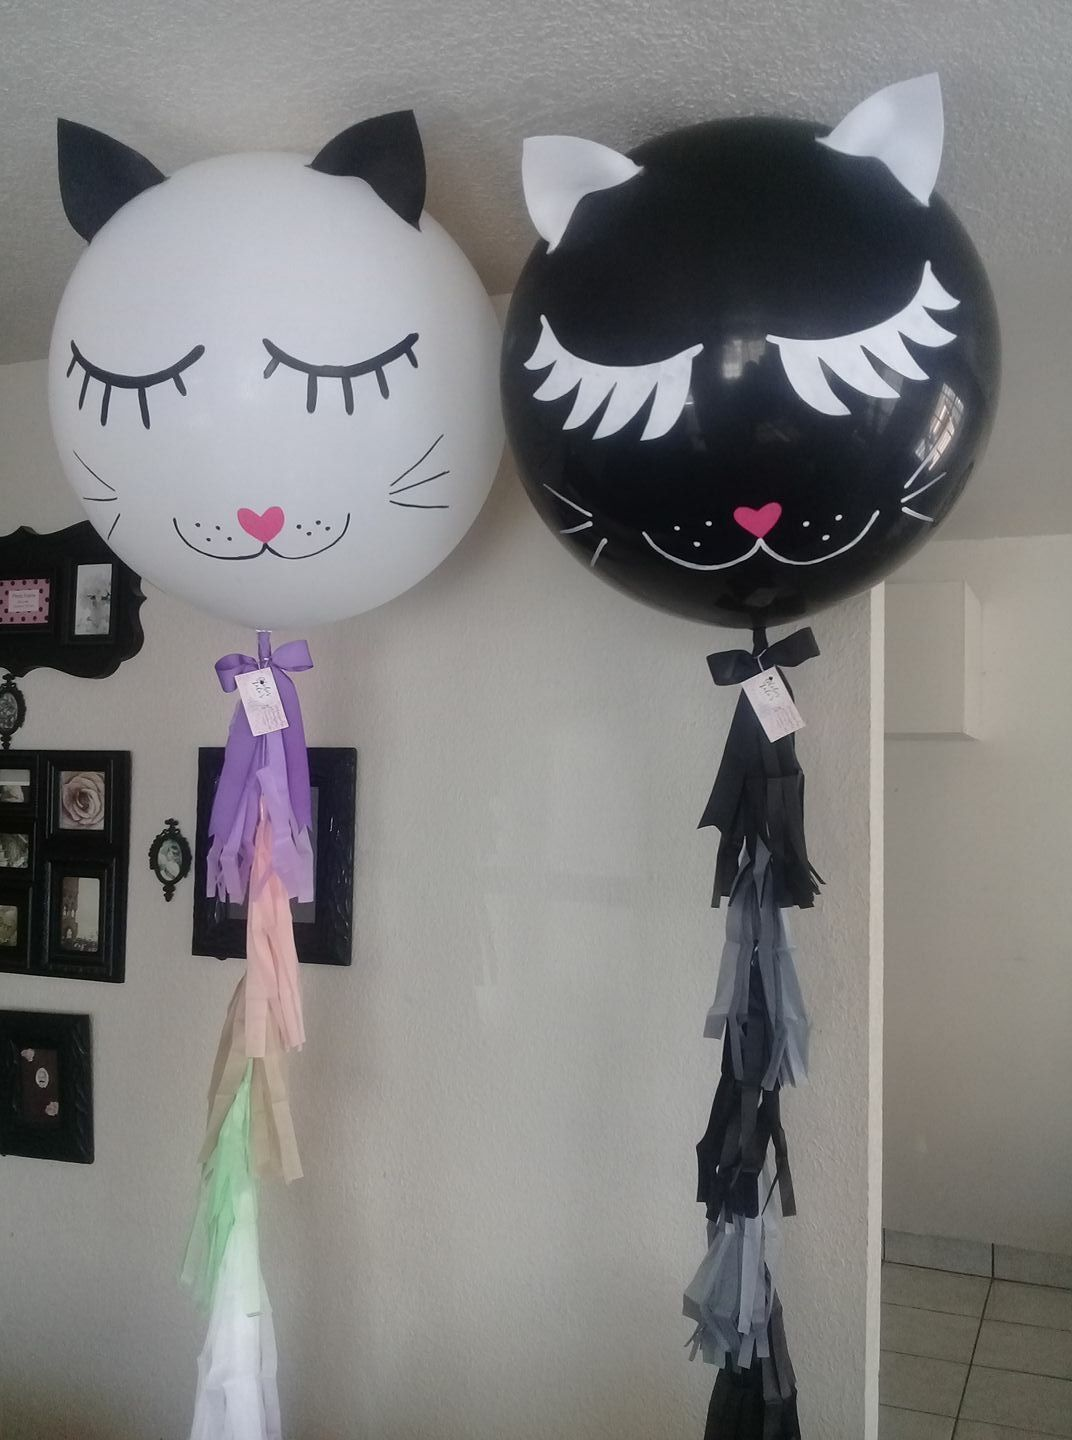 Pin By Nohuriber Riera On How To On Balloons In 2020 Kitten Birthday Party Cat Birthday Party Cat Themed Birthday Party